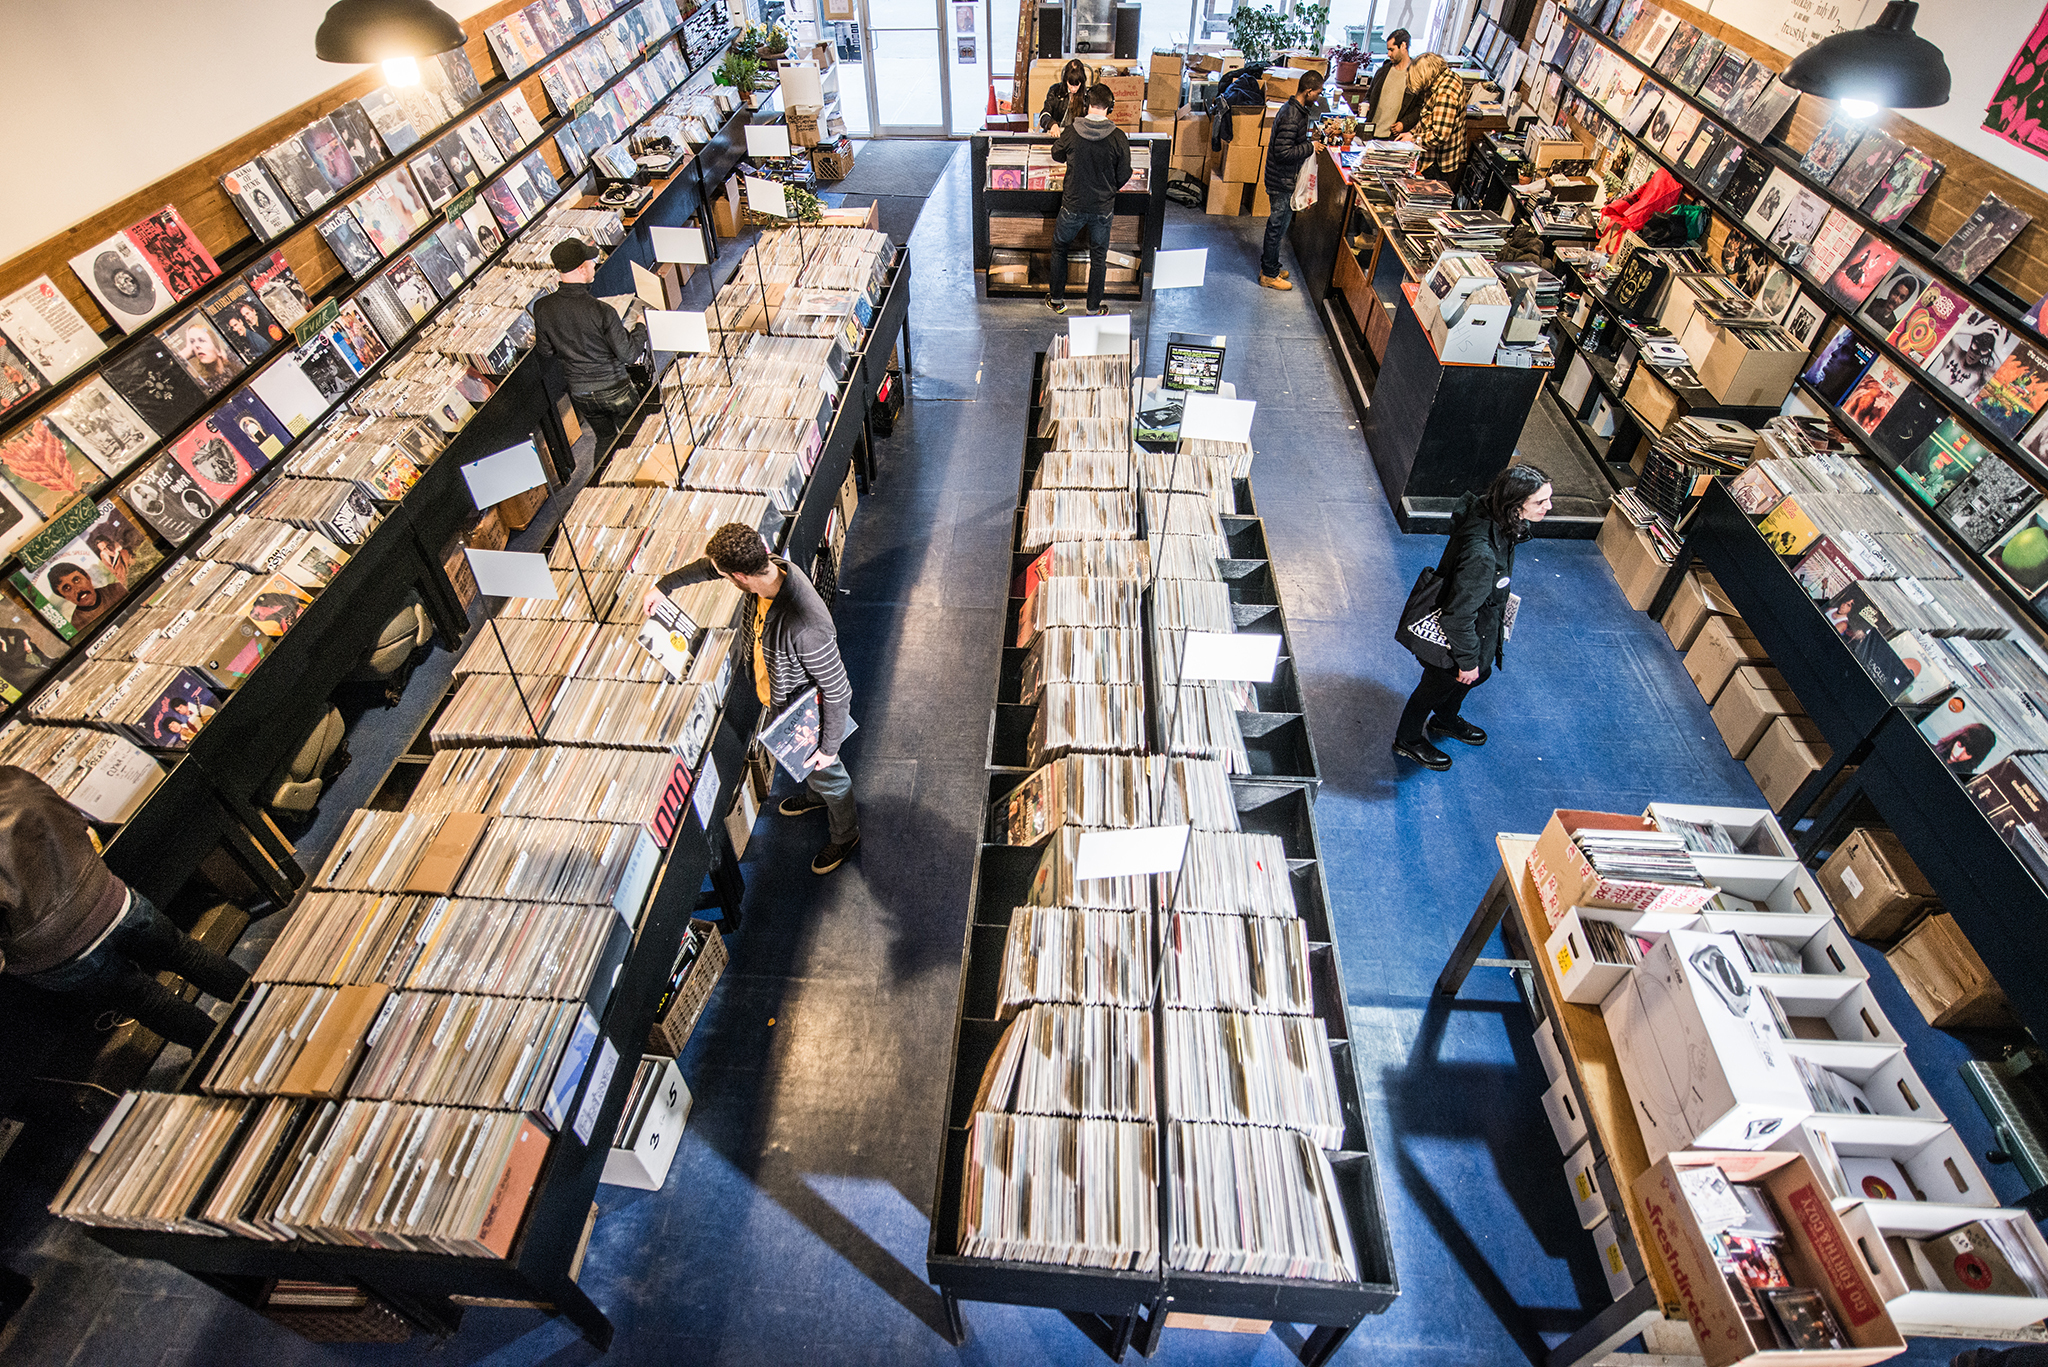 Best And Less Stores Melbourne 19 Best Record Stores In Nyc For Finding New Music And Rare Vinyl